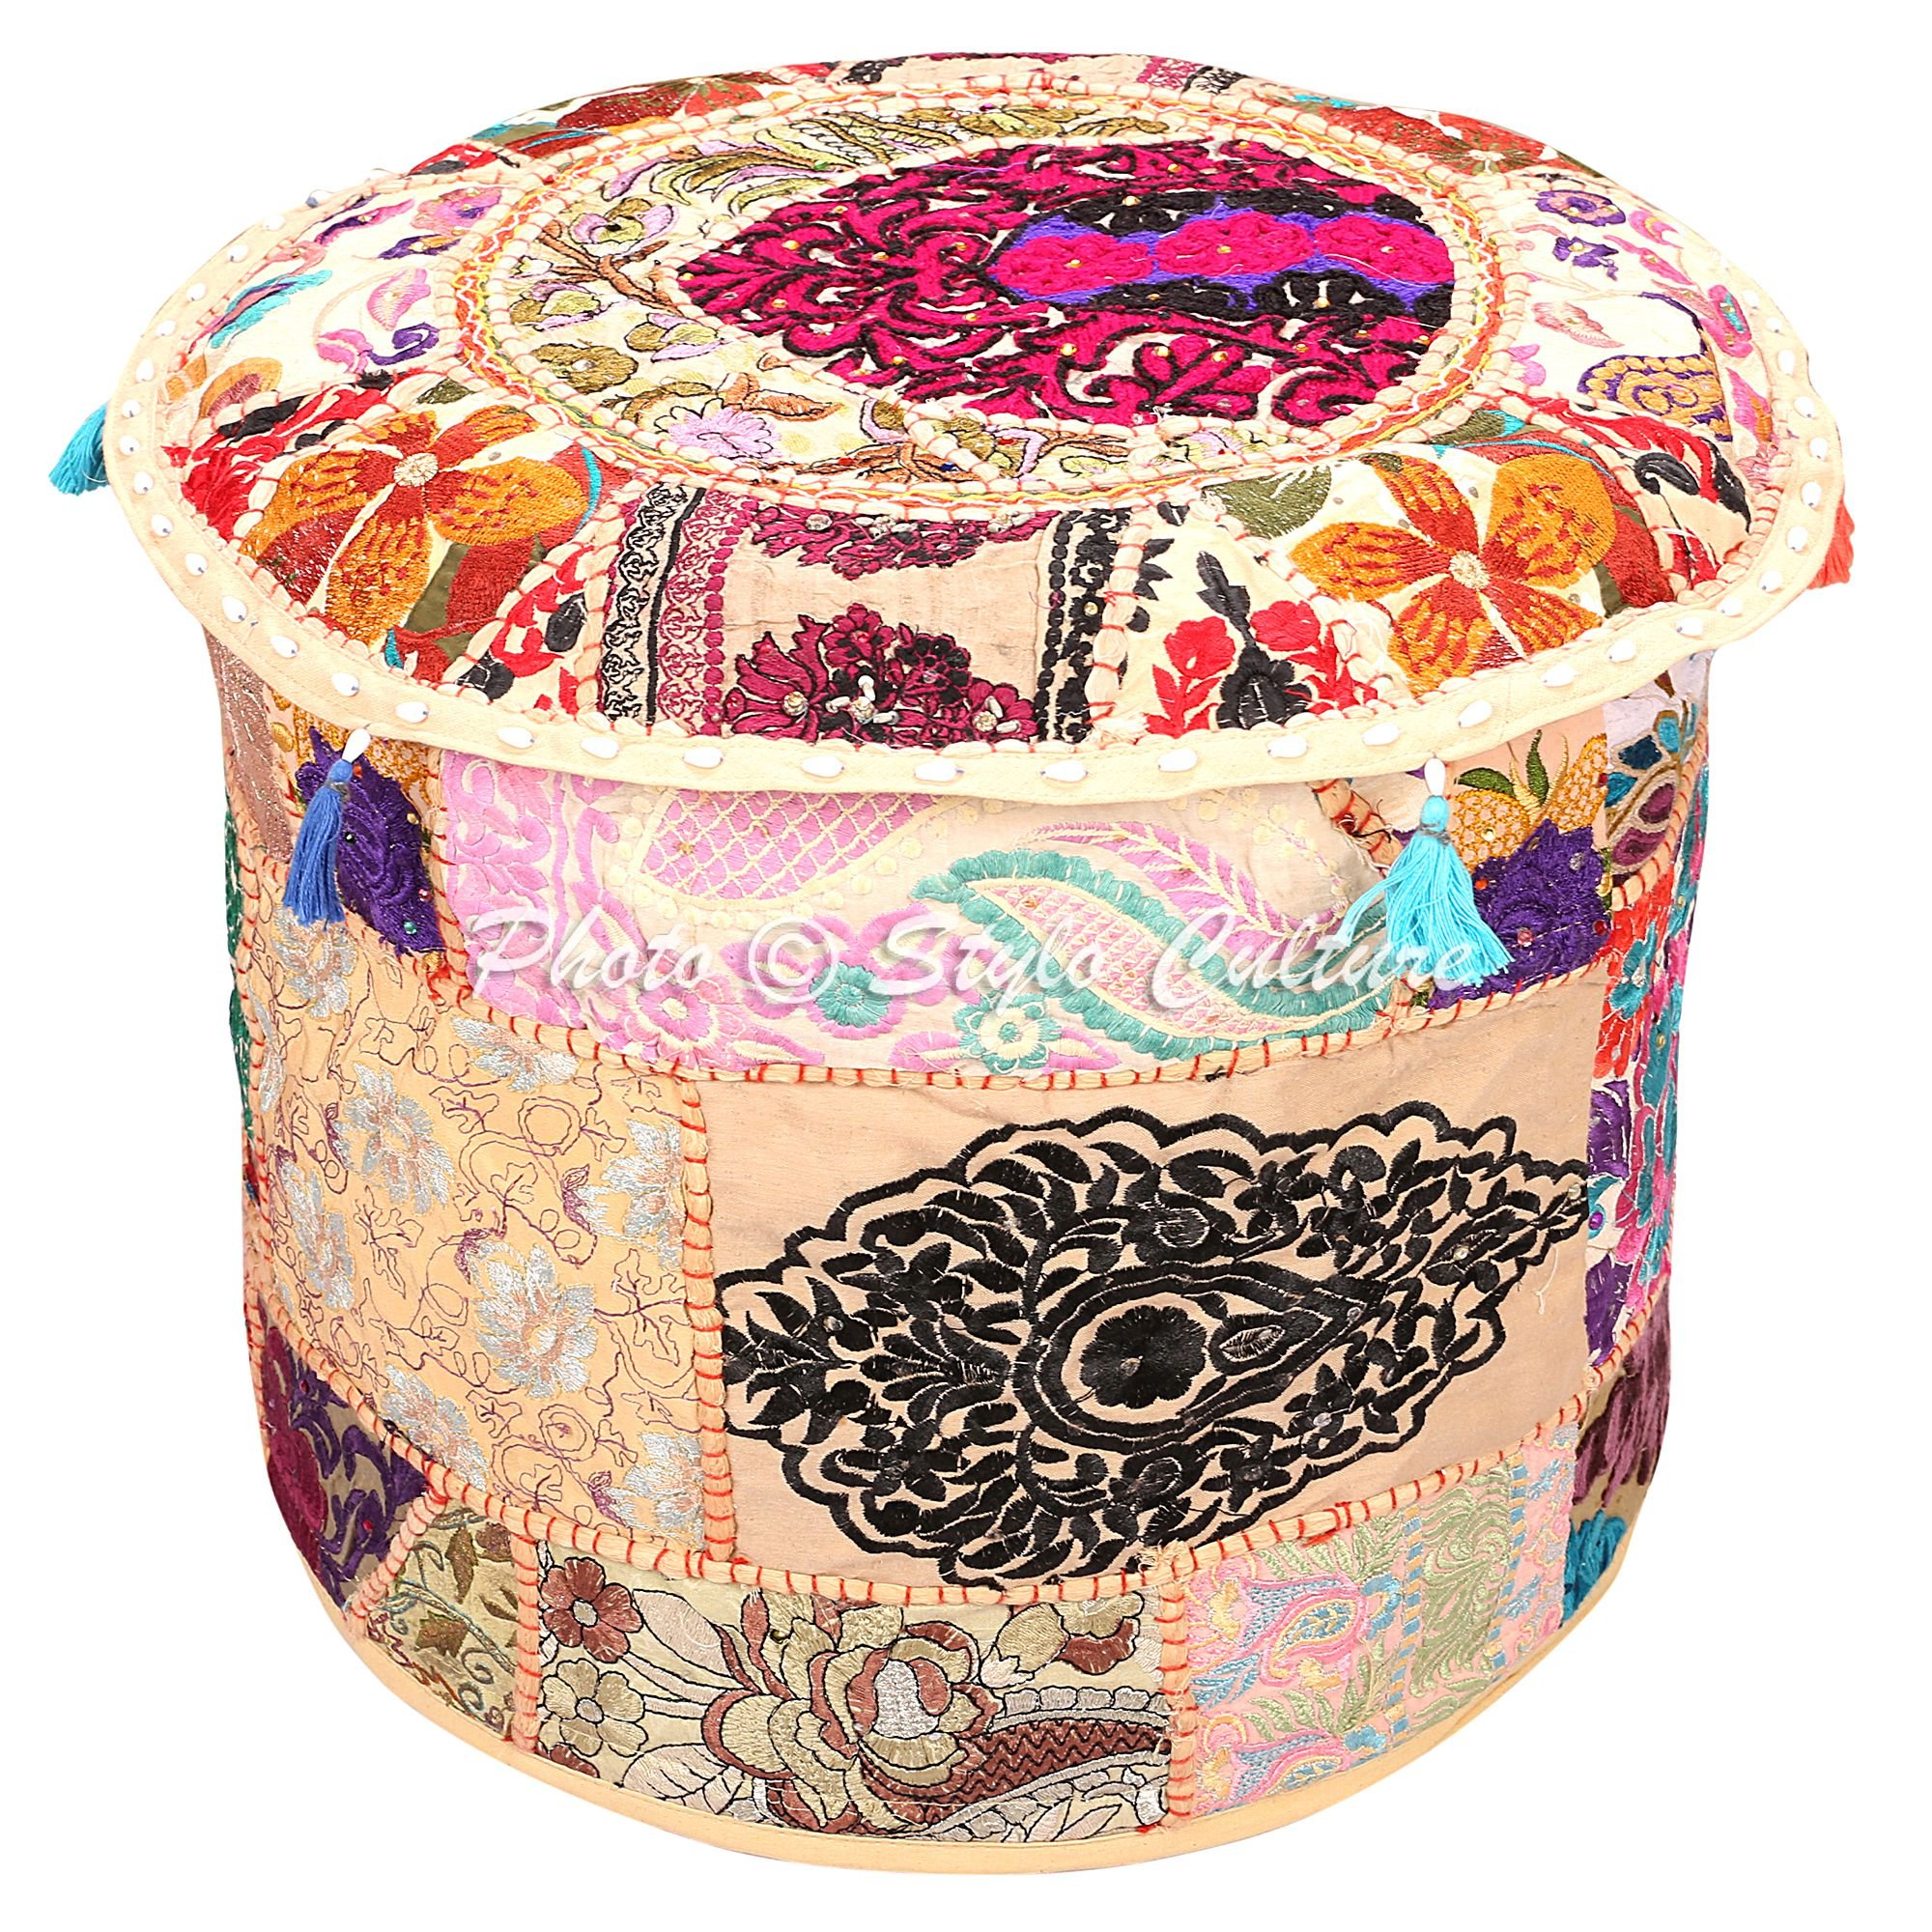 Stylo Culture Decorative Living Room Pouf Cover Round Patchwork Embroidered Pouffe Ottoman Cover Beige Cotton Floral Traditional Furniture Footstool Seat Puff Cover (18x18x13)